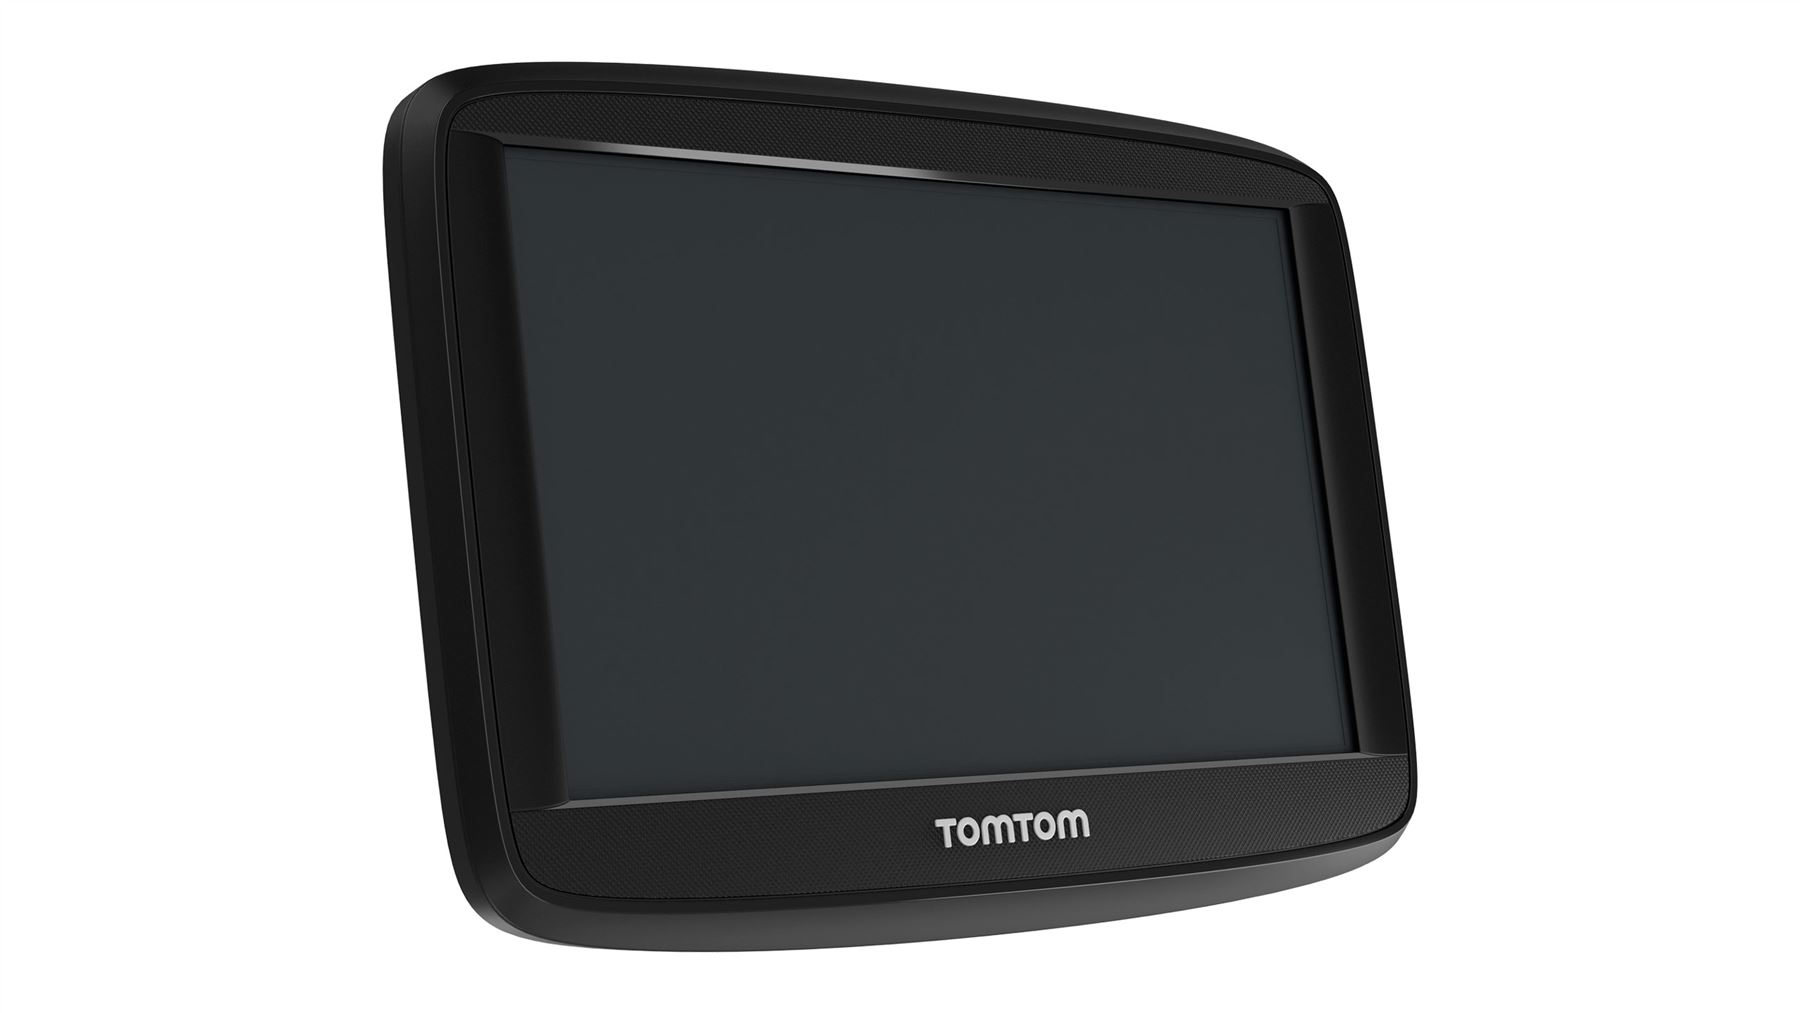 tomtom go professional 6250 gps truck sat nav europe lifetime maps traffic ebay. Black Bedroom Furniture Sets. Home Design Ideas